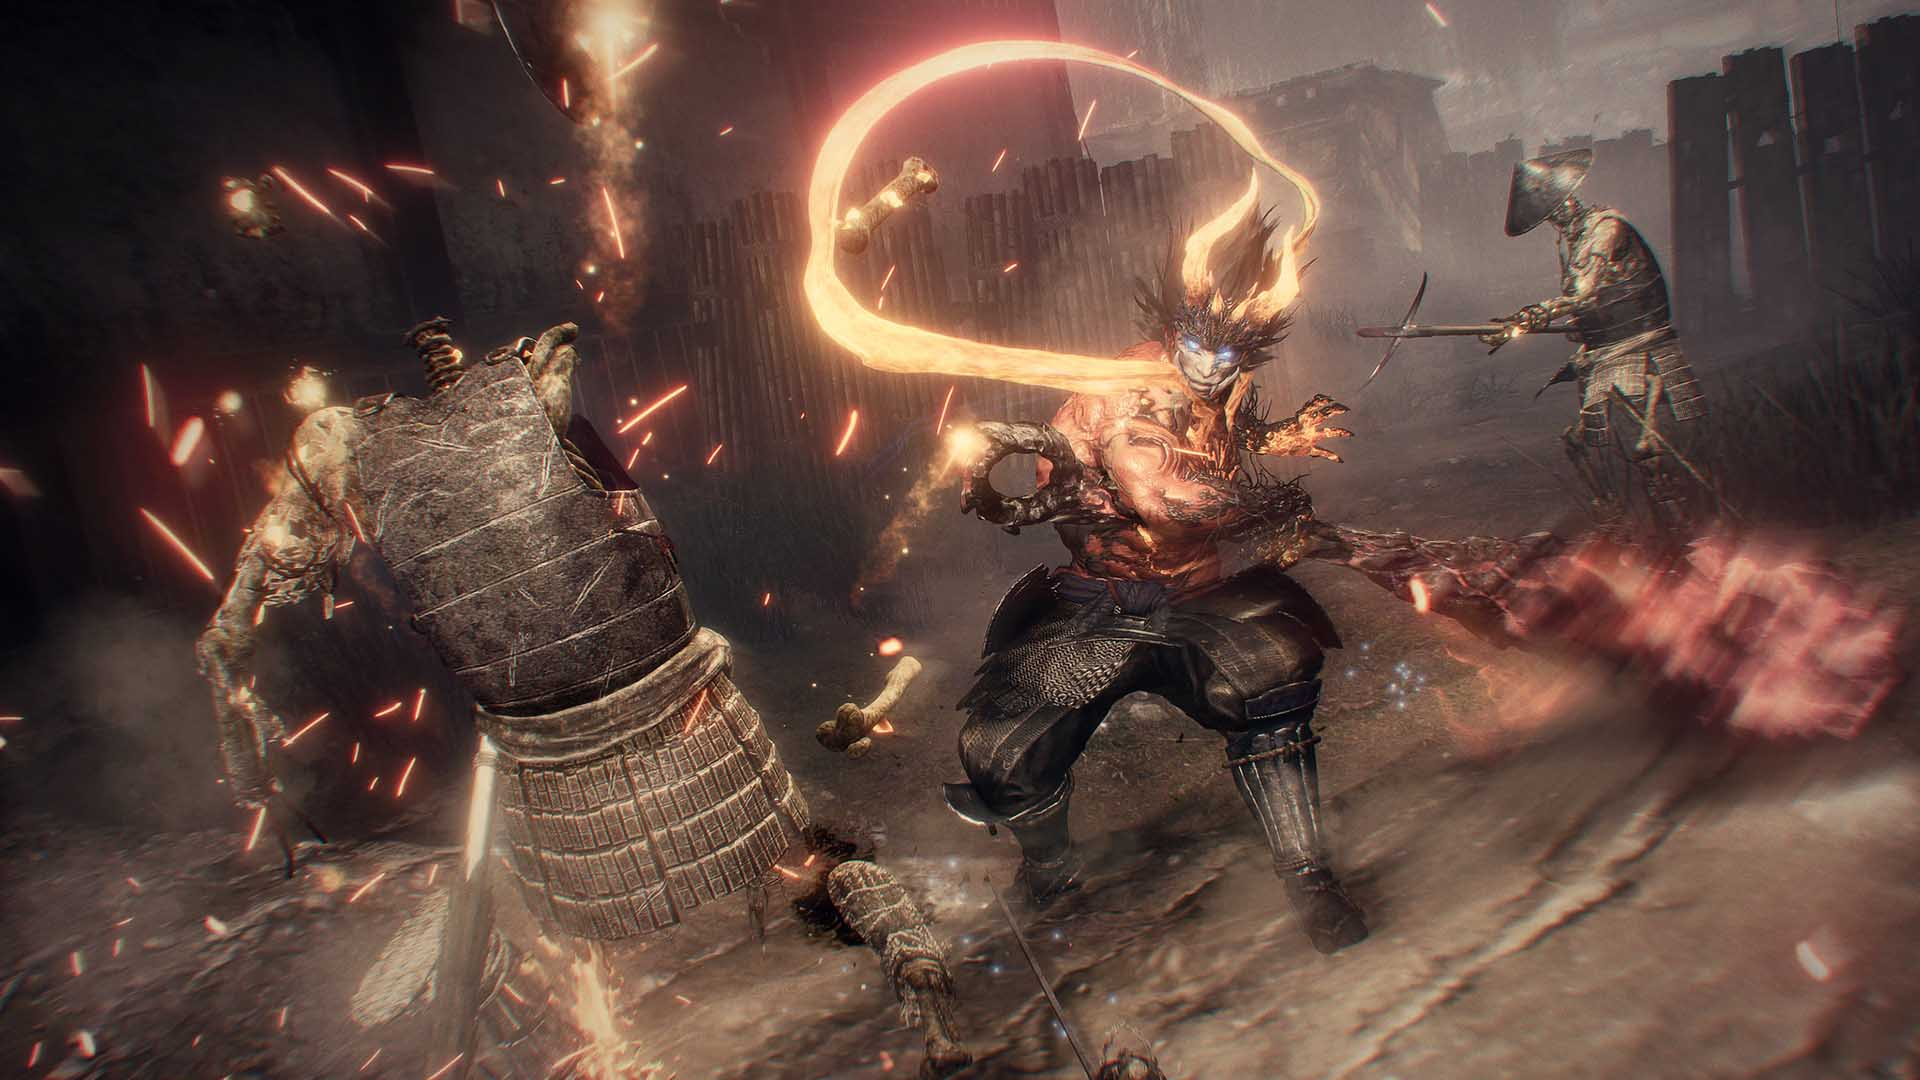 Nioh 2 The First Samurai To Add New Difficulty End Game Activities Free Content Confirmed